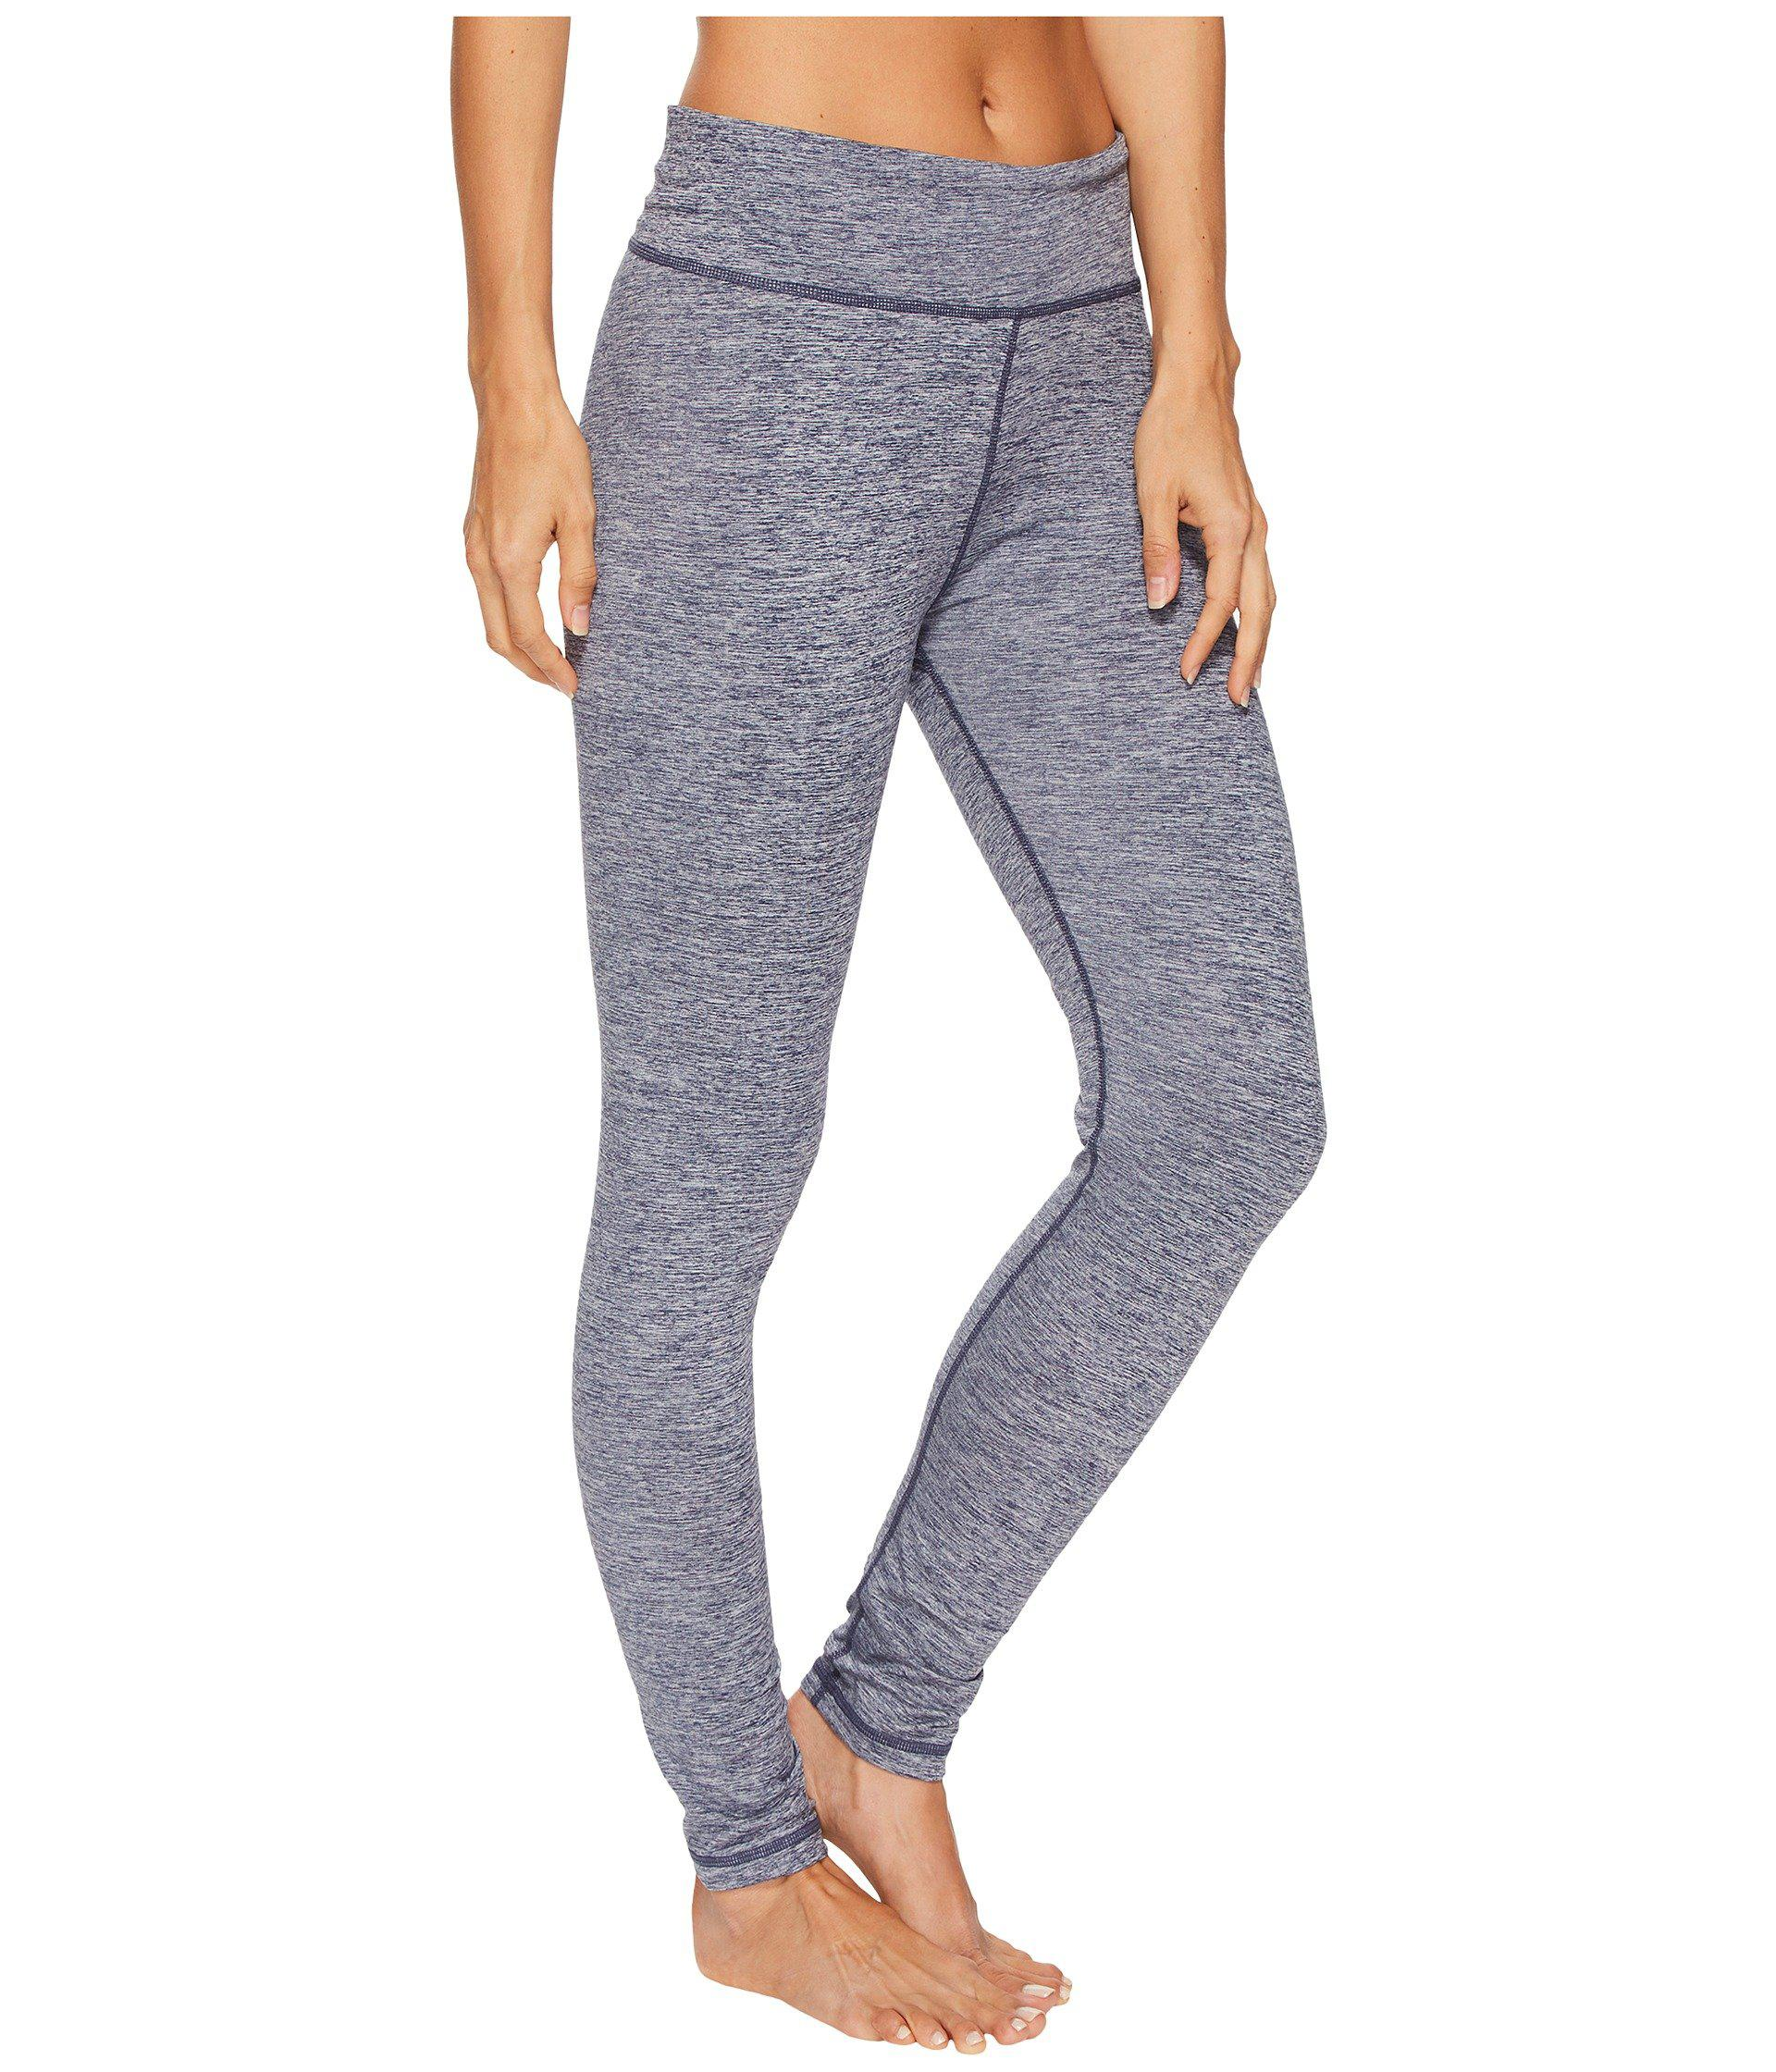 57b6807cc24a Lyst - Adidas Performer High-rise Brushed Cozy Tights in Blue